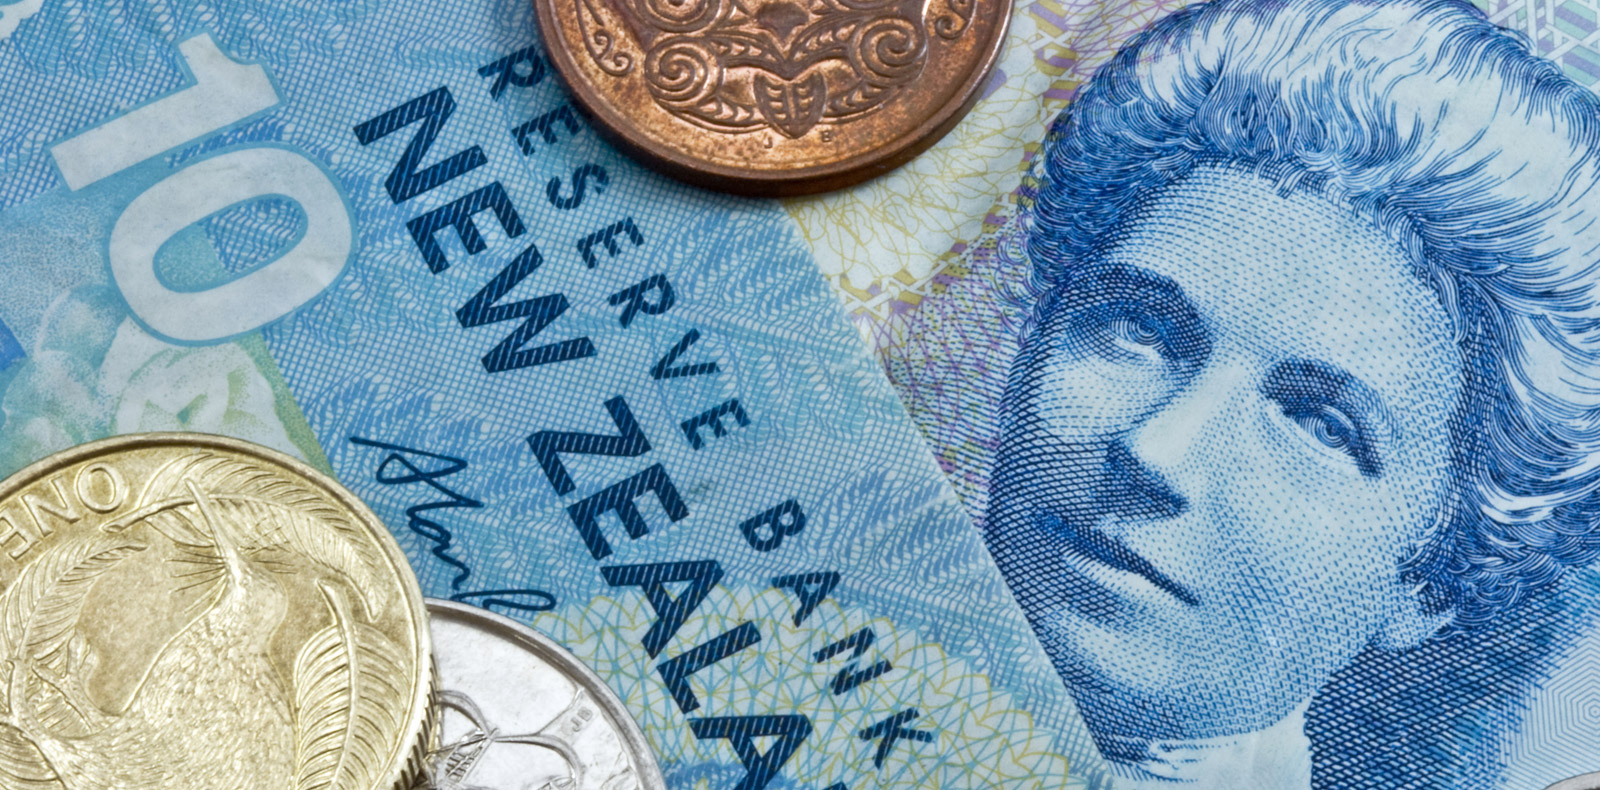 Why is the New Zealand Dollar so strong?